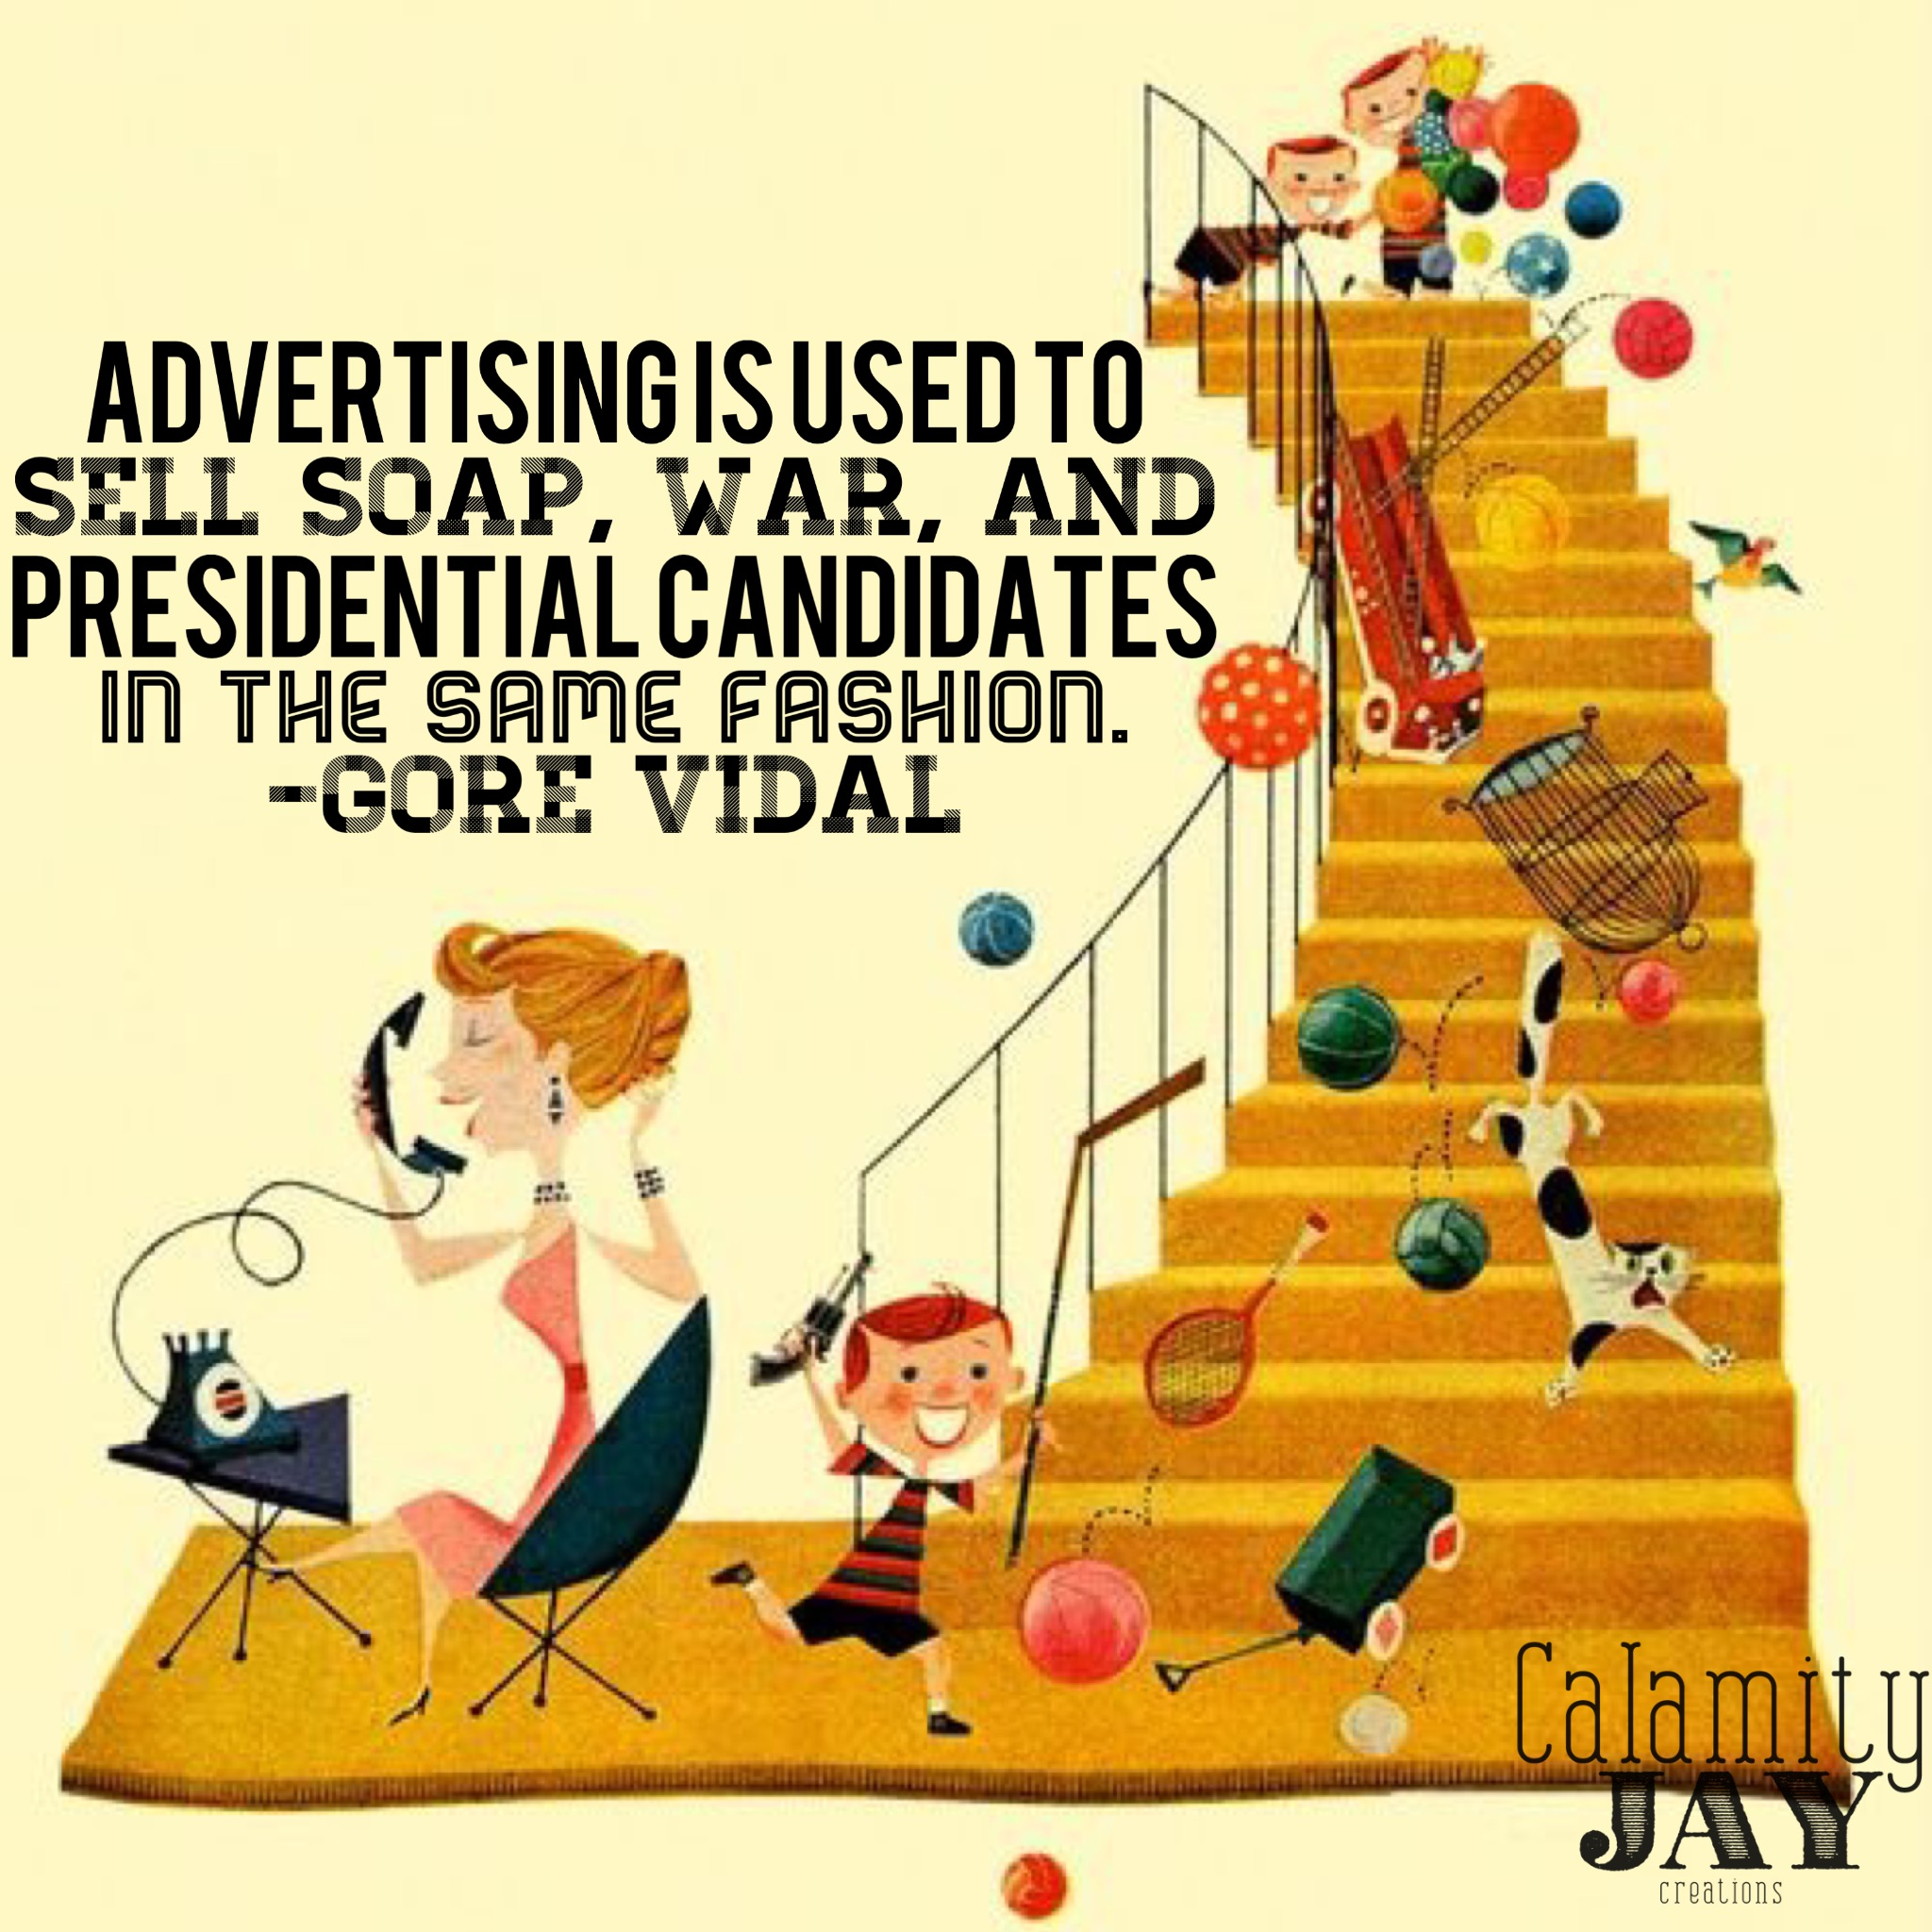 """Advertising is used to sell soap, war, and presidential candidates in the same fashion"" - Gore Vidal."